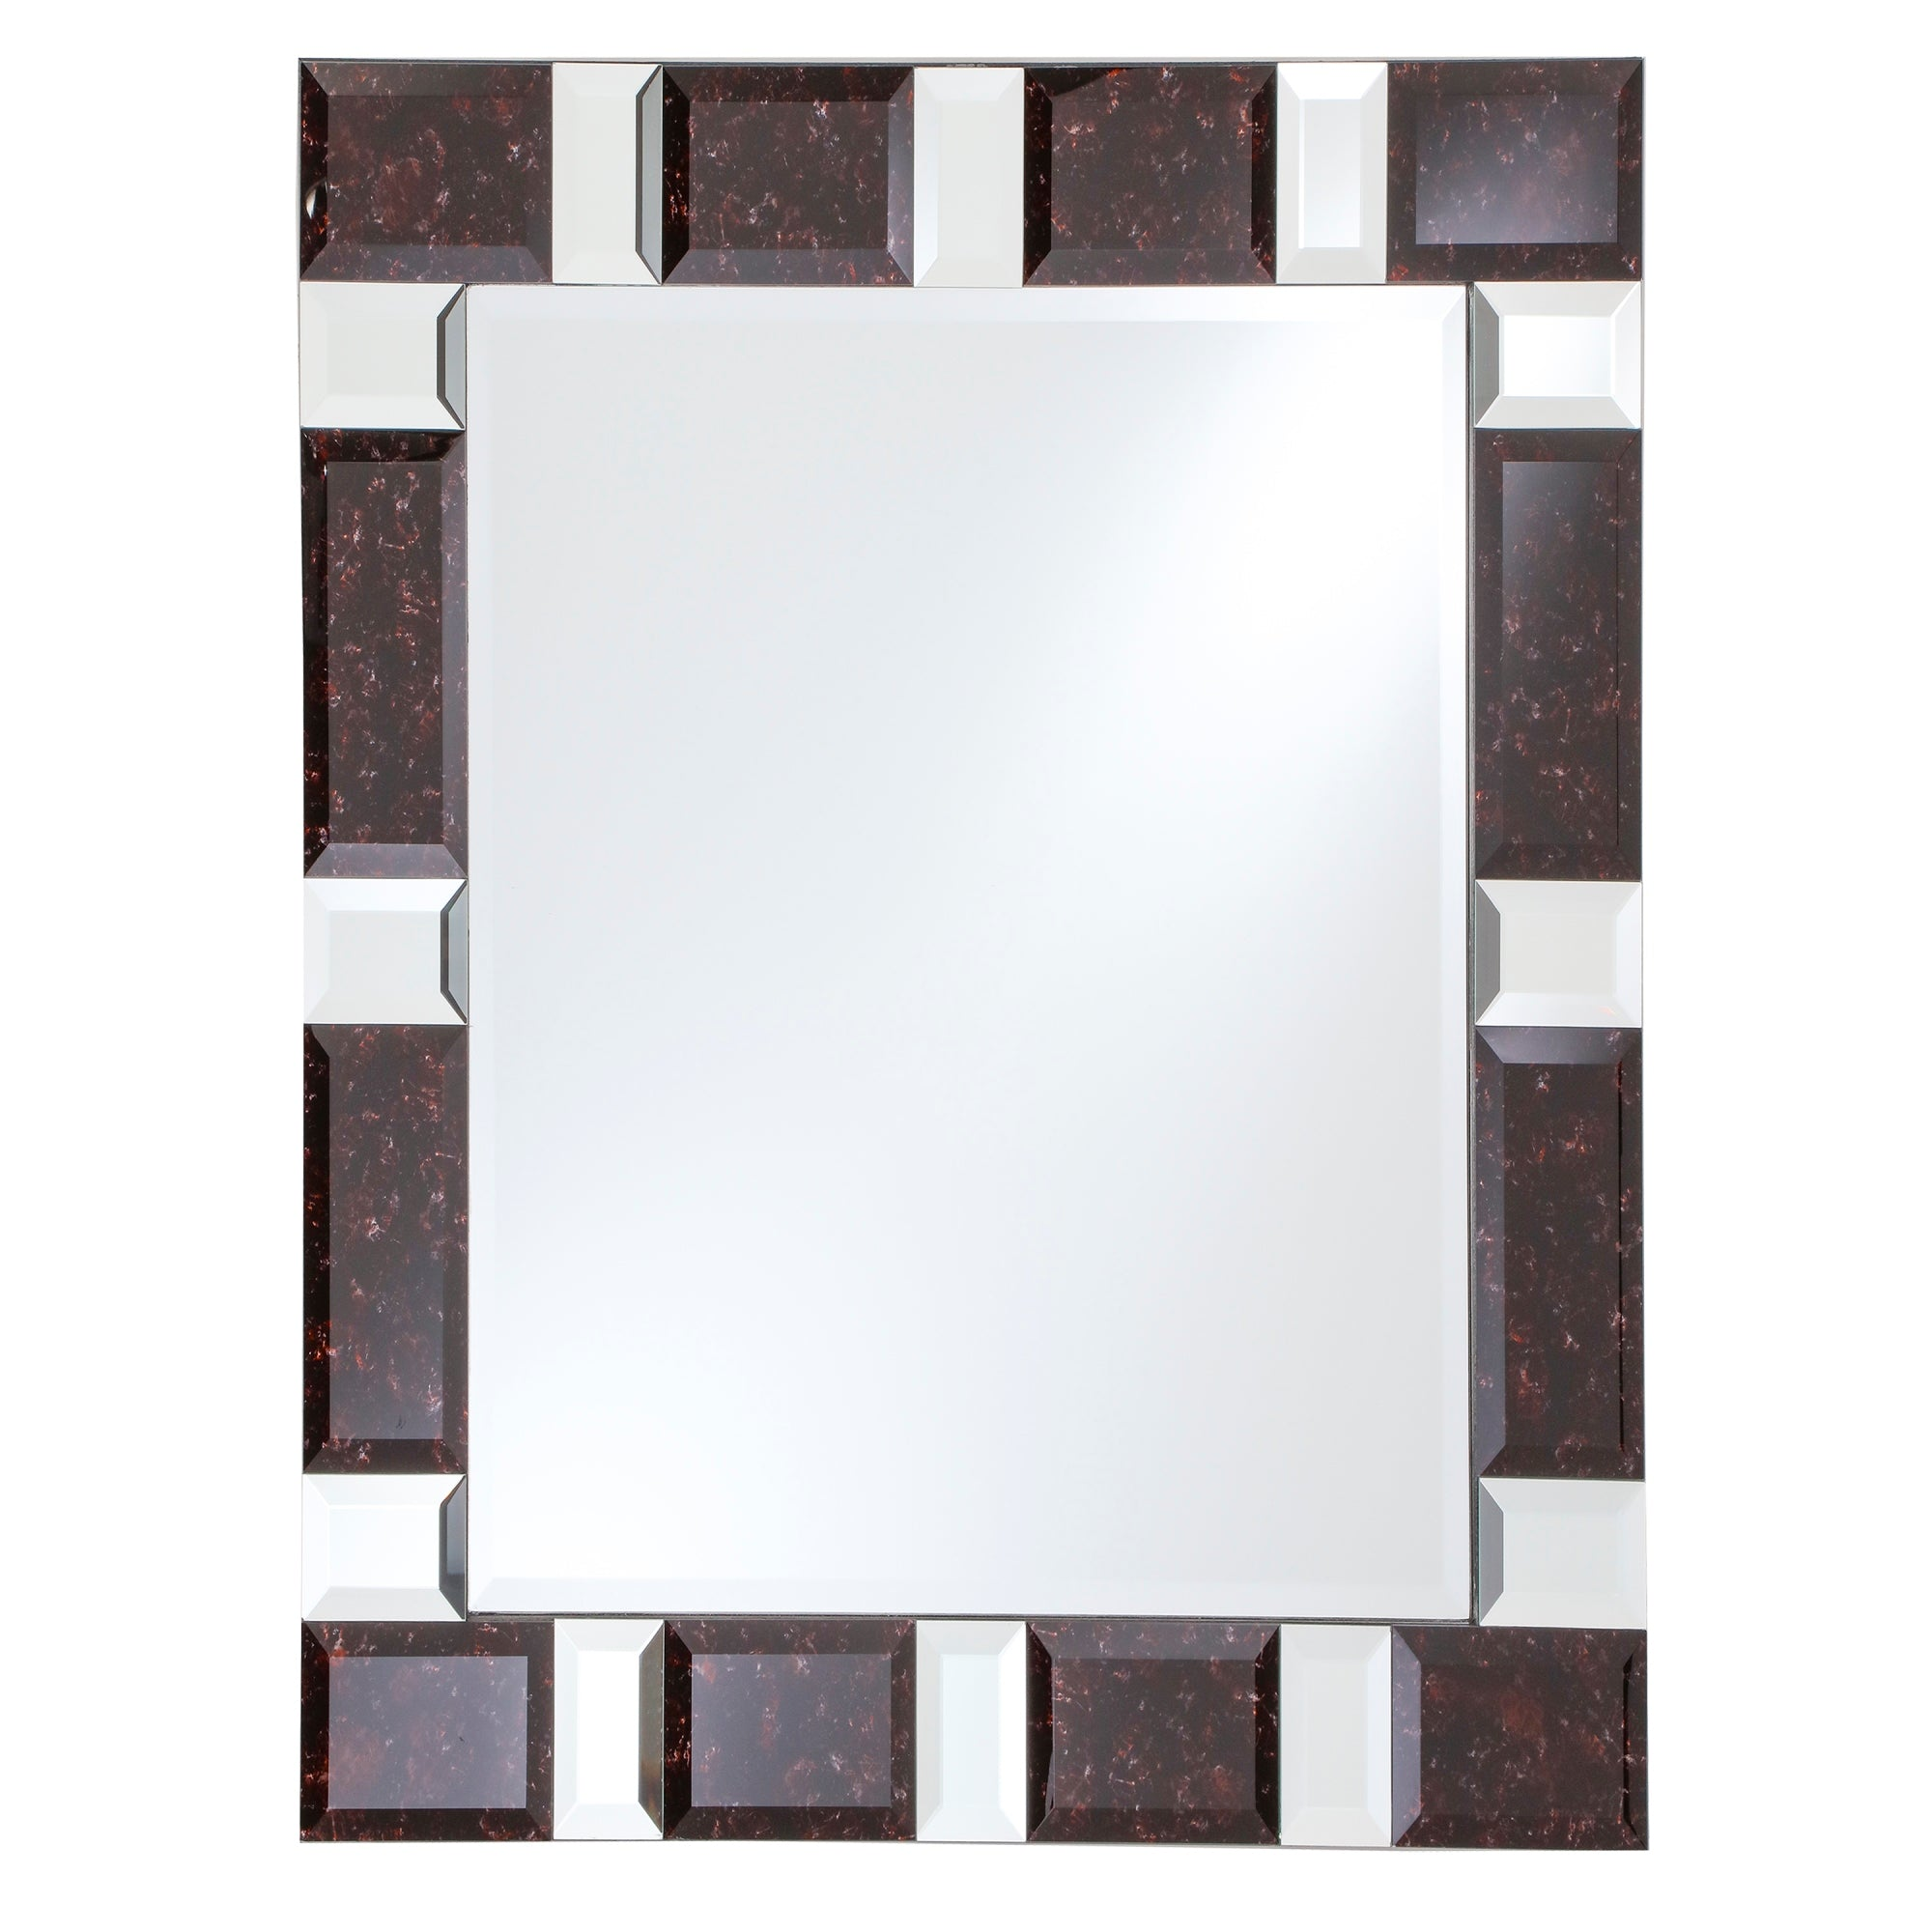 Wall Mirror   Decorative Mirror Framed With Black/Maroon Marble Glass Tiles  And Mirrored Beveled ...